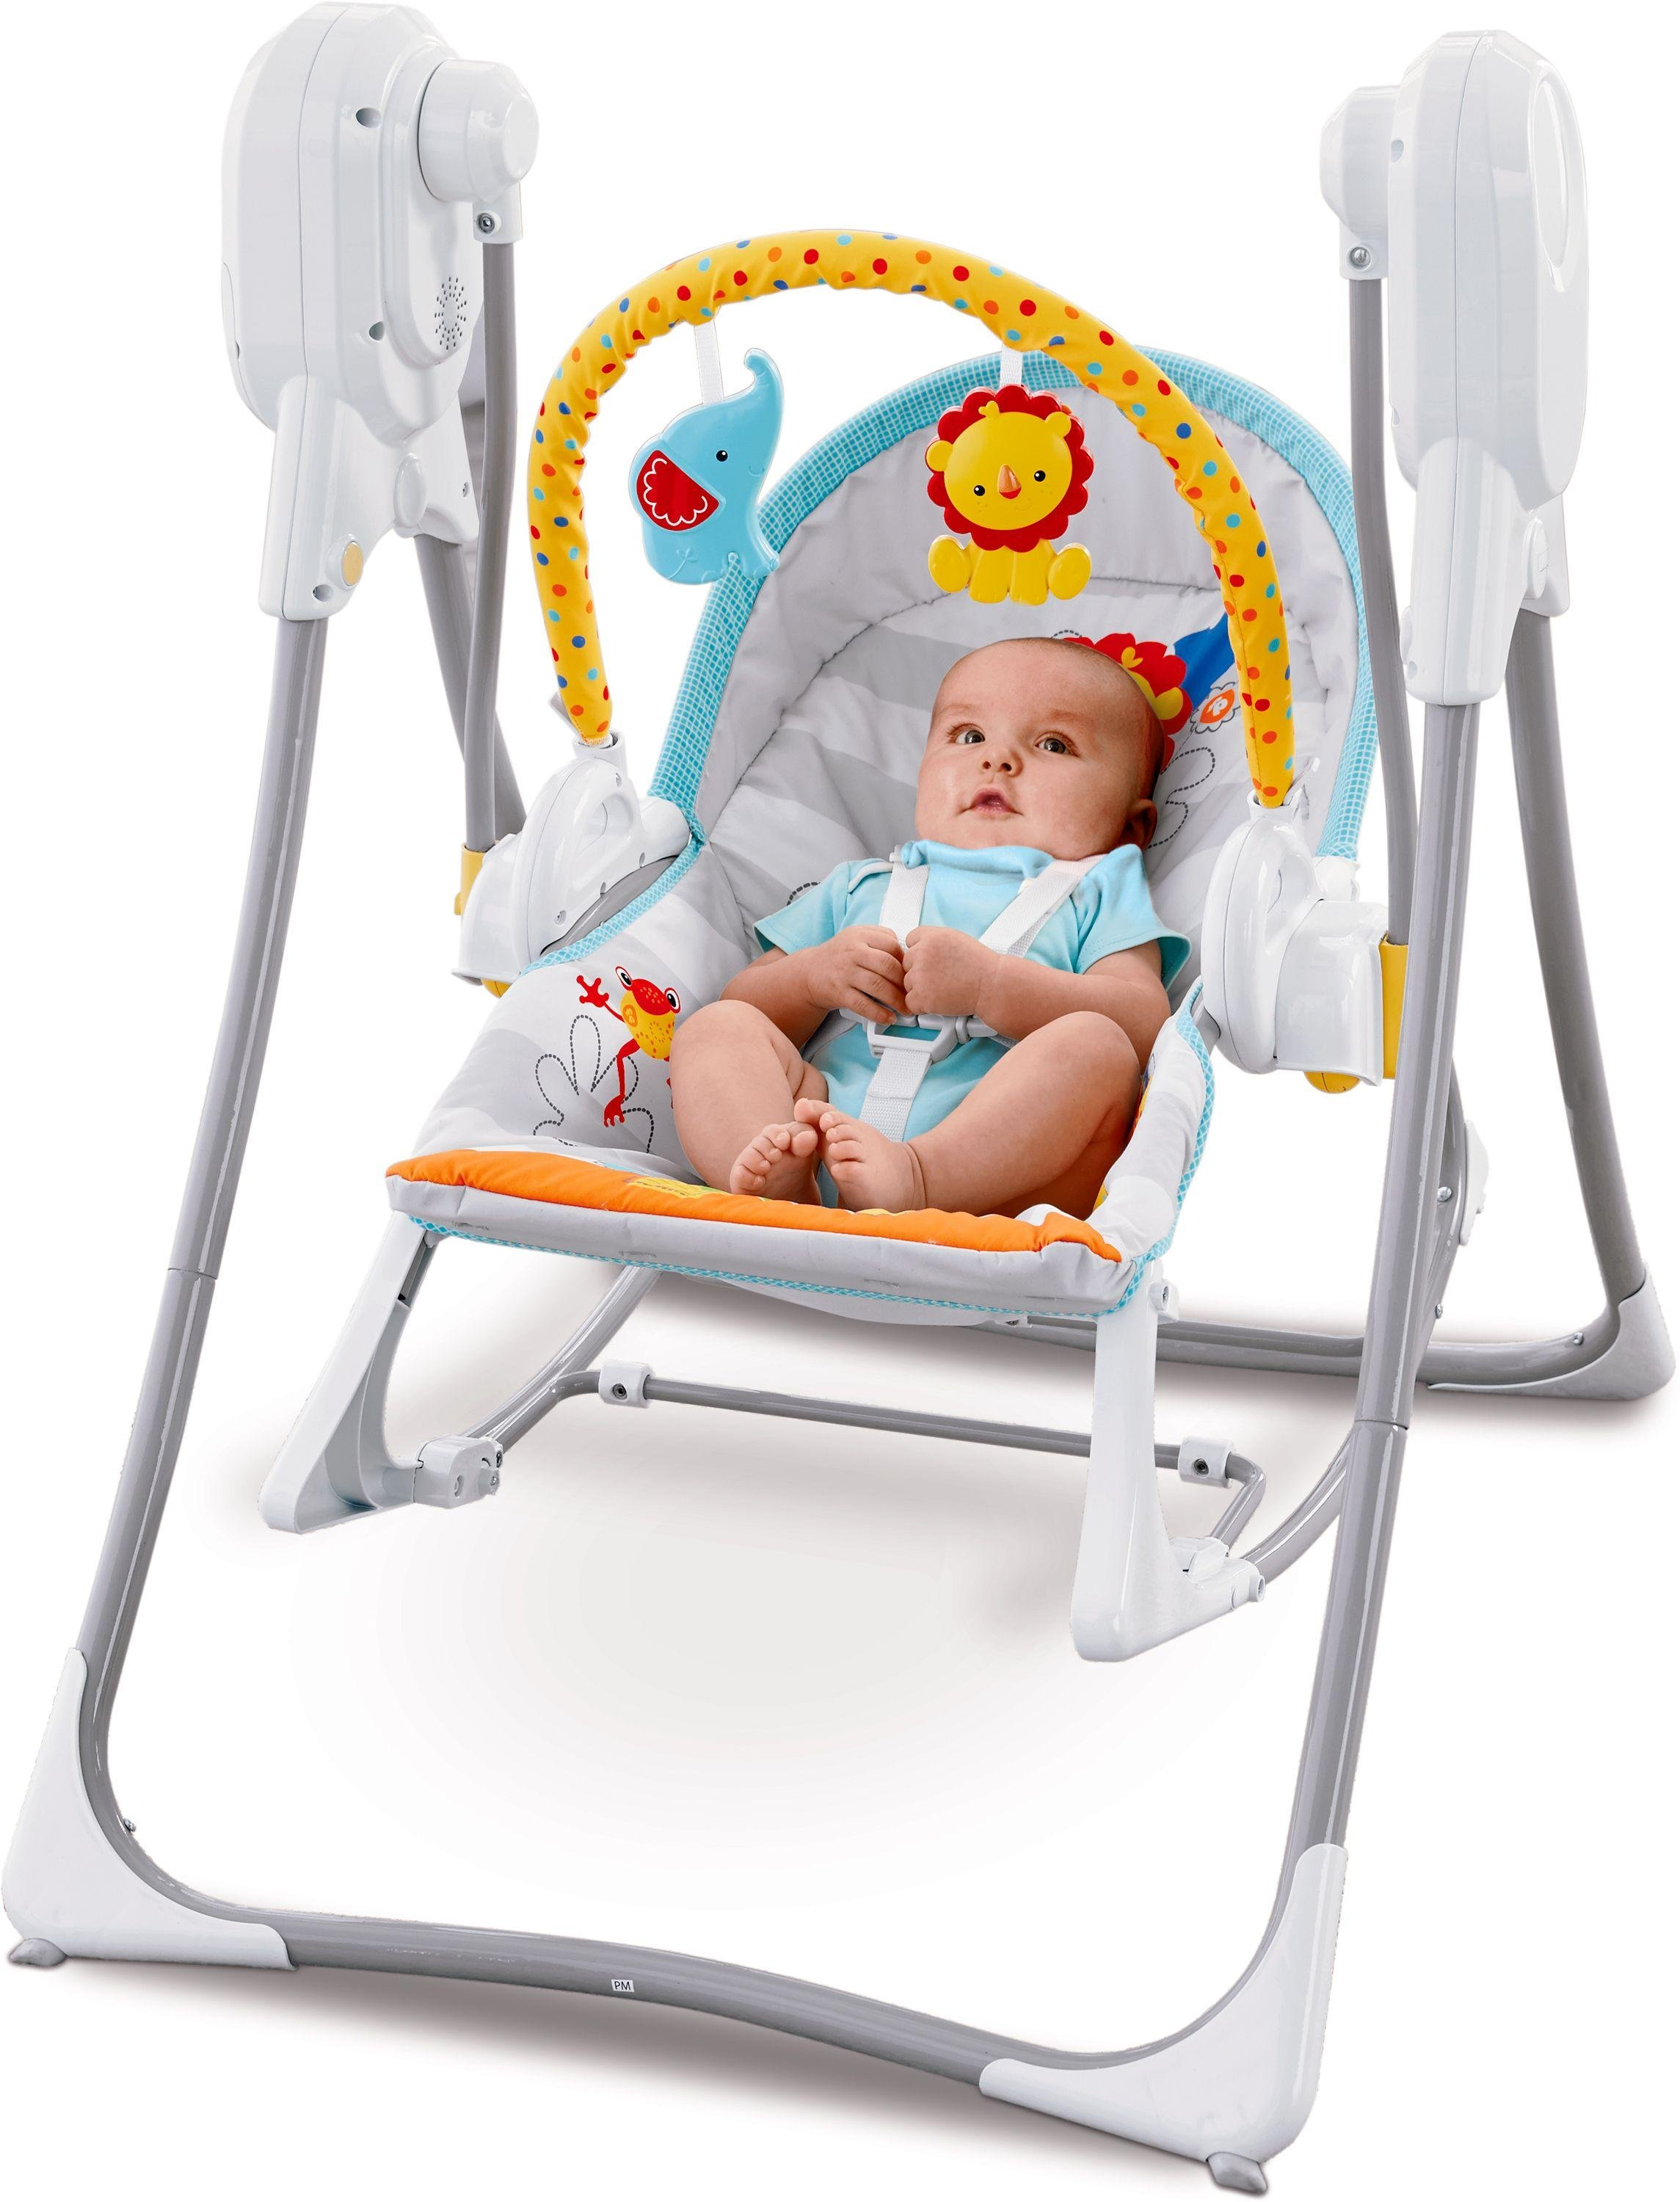 Image of Fisher-Price - 3 in 1 Rocker Swing